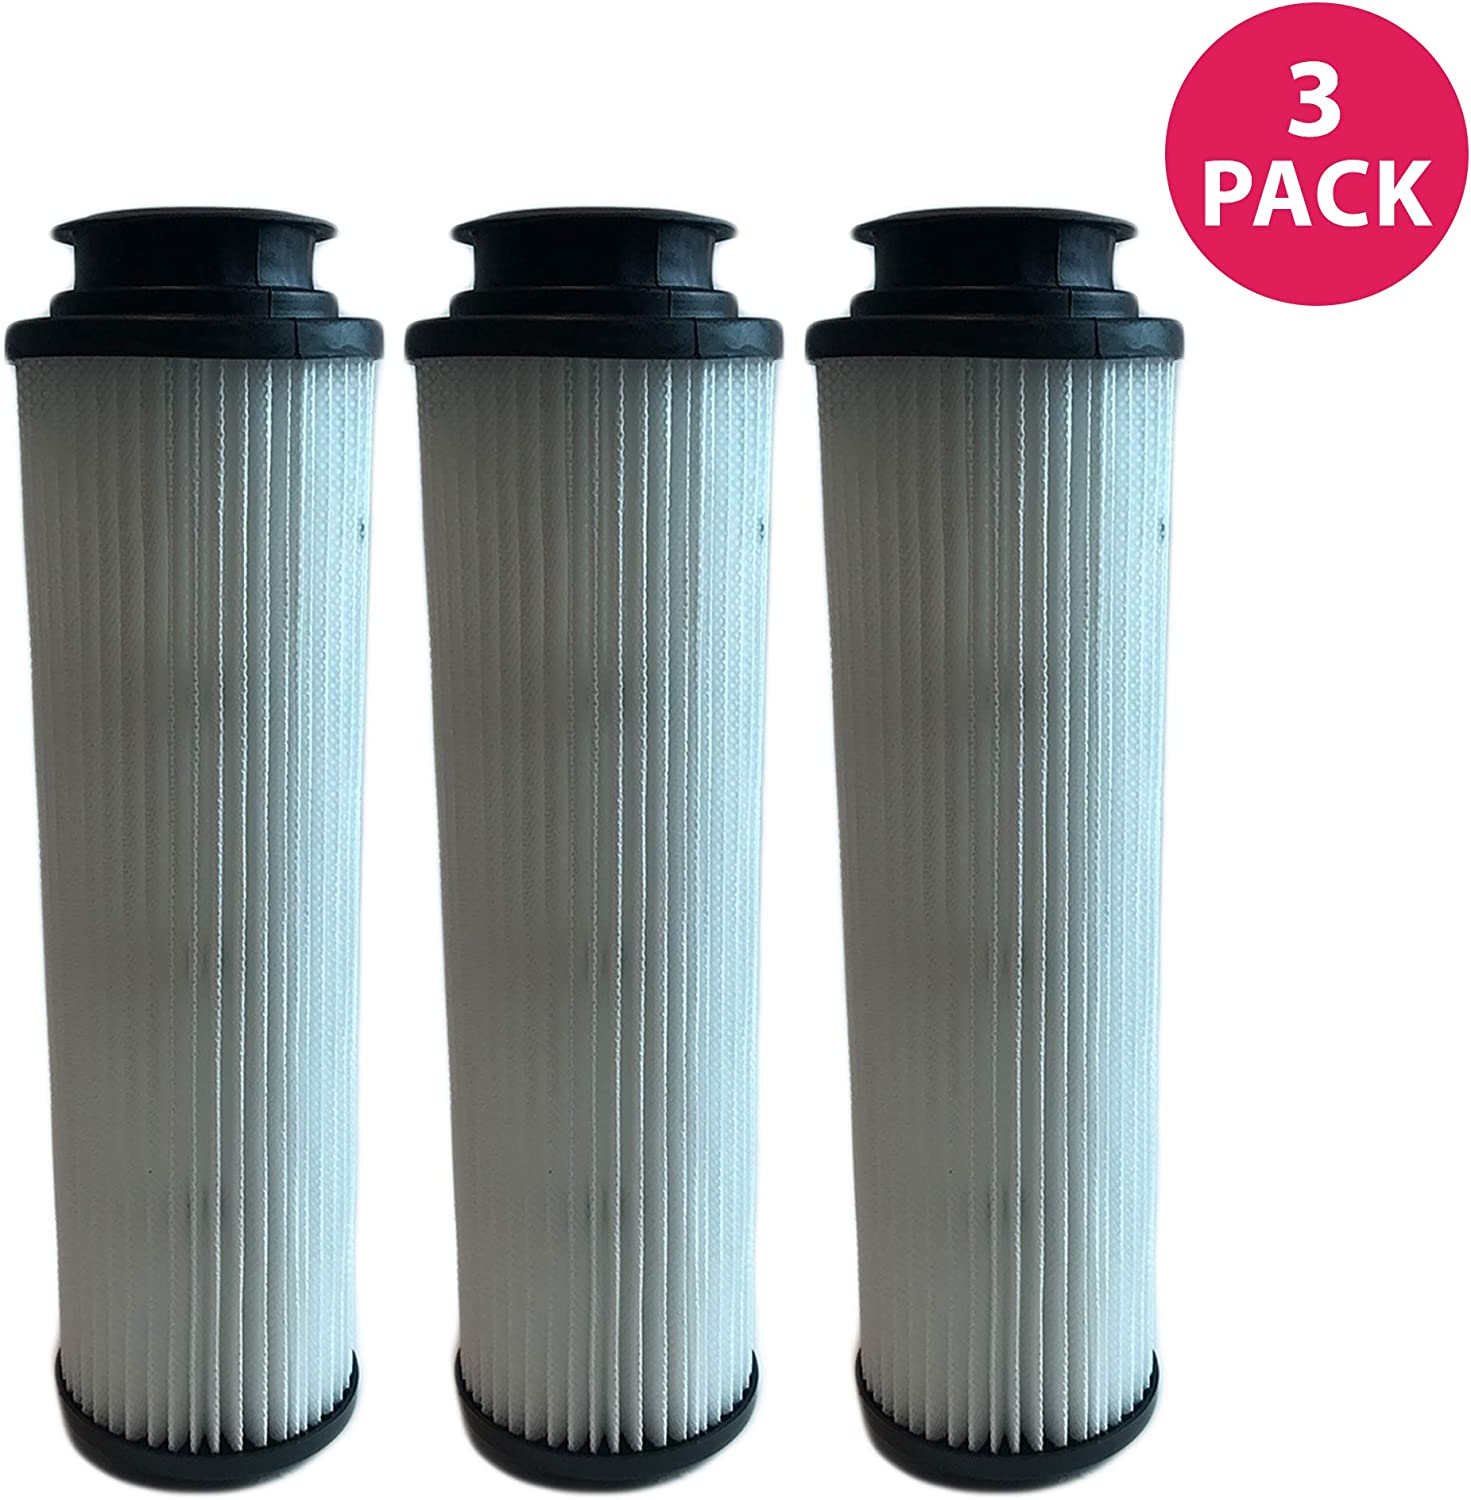 Crucial Vacuum Filter Replacement Parts Compatible with Hoover Part # 471062, 40140201, 43611042, 42611049, F923 - Fits Hoover Windtunnel Bagless HEPA Style Filter - Perfect Filters - Bulk (3 Pack)